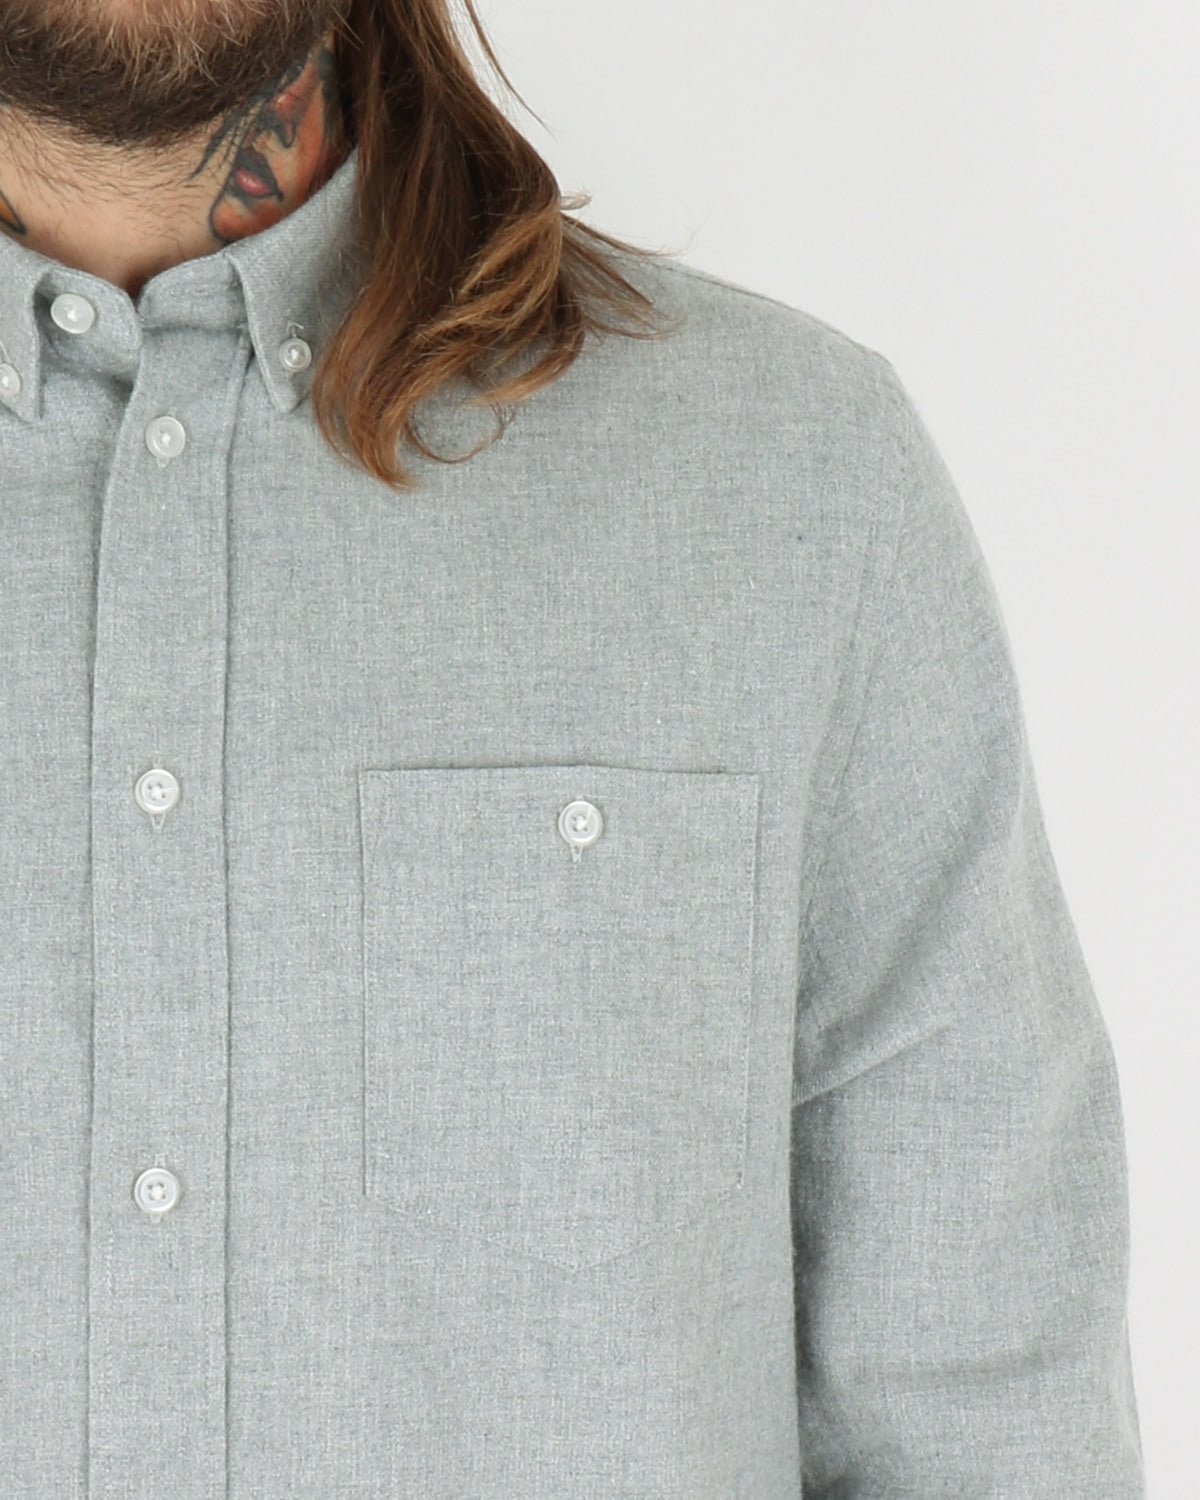 we are copenhagen_davy shirt ls_light grey melange_view_3_3